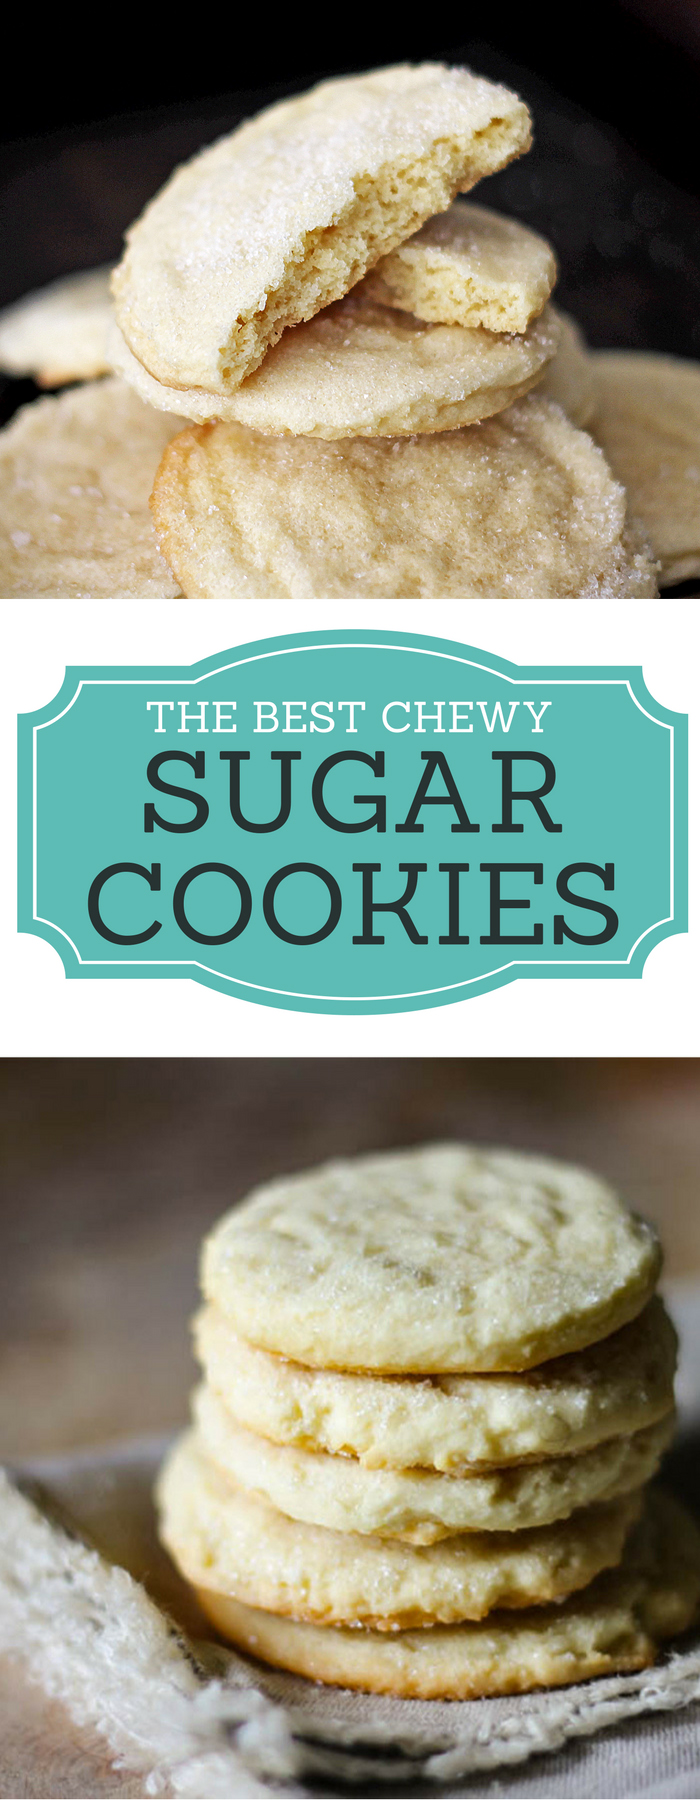 The secret ingredient in this chewy cookie recipe is so simple but makes all the difference!